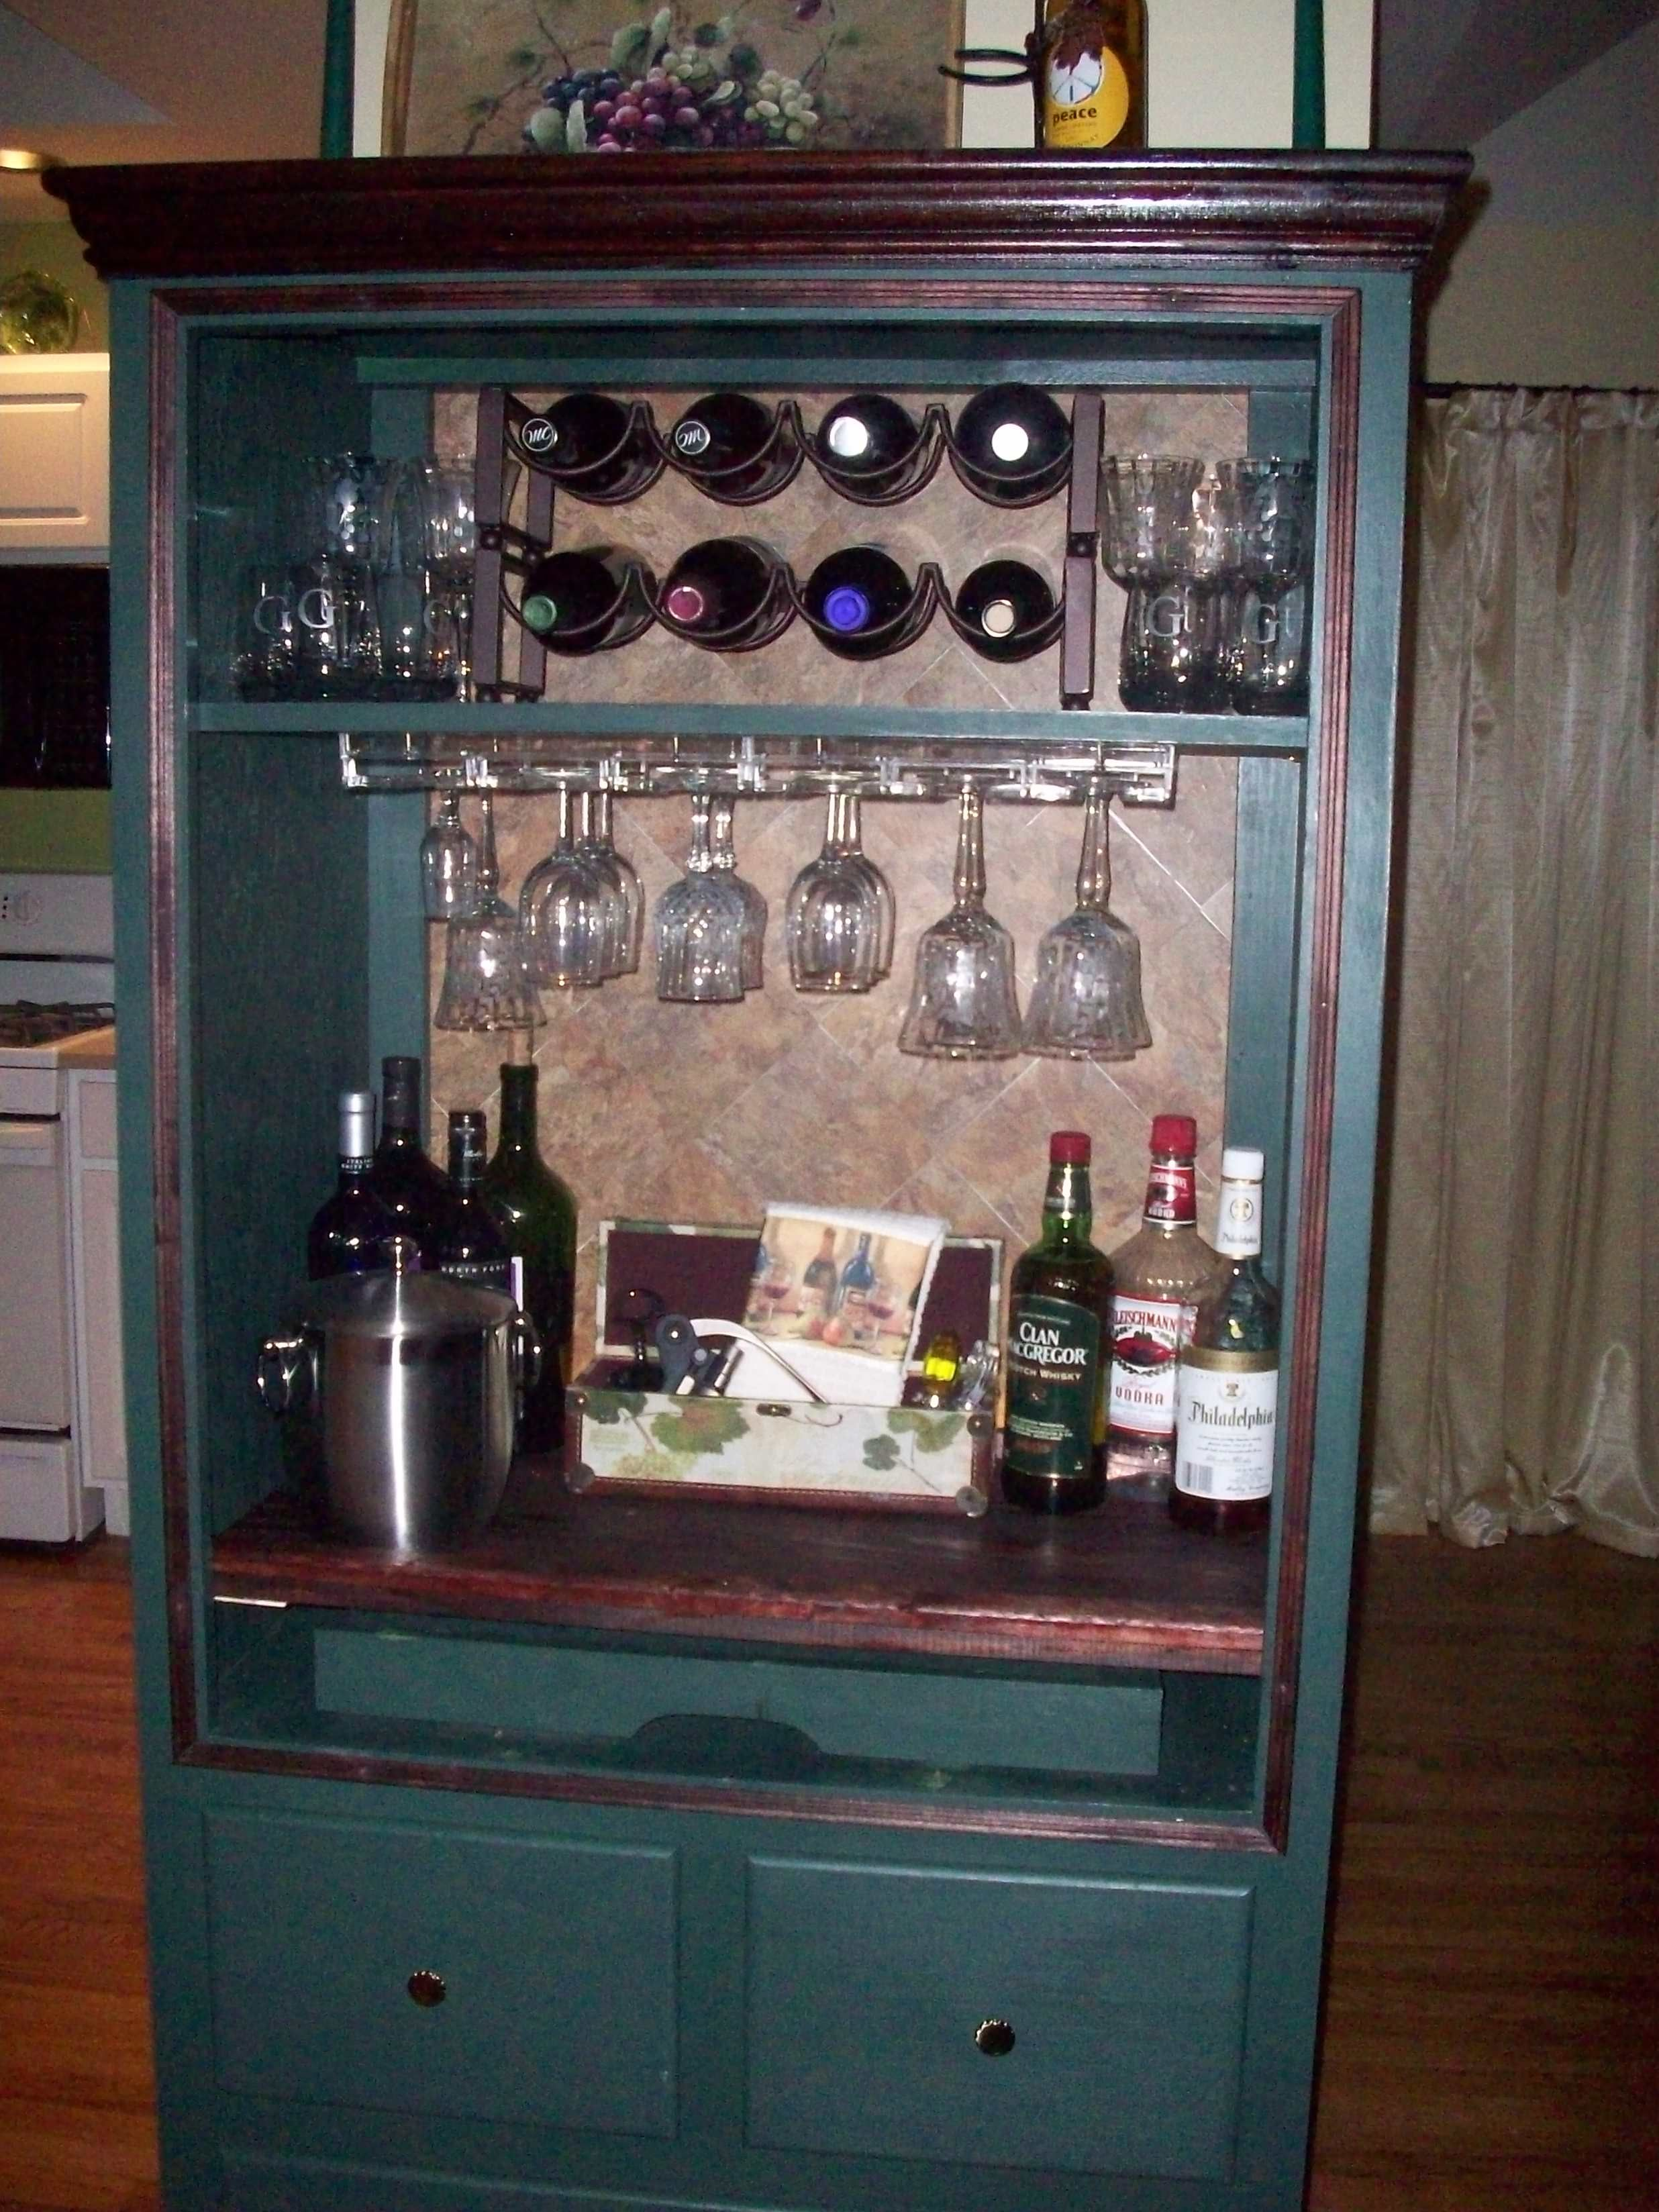 Bar I Made From Armoire I Found On Craigslist Armoire Bar Armoire Repurpose Wine And Liquor Cabinets